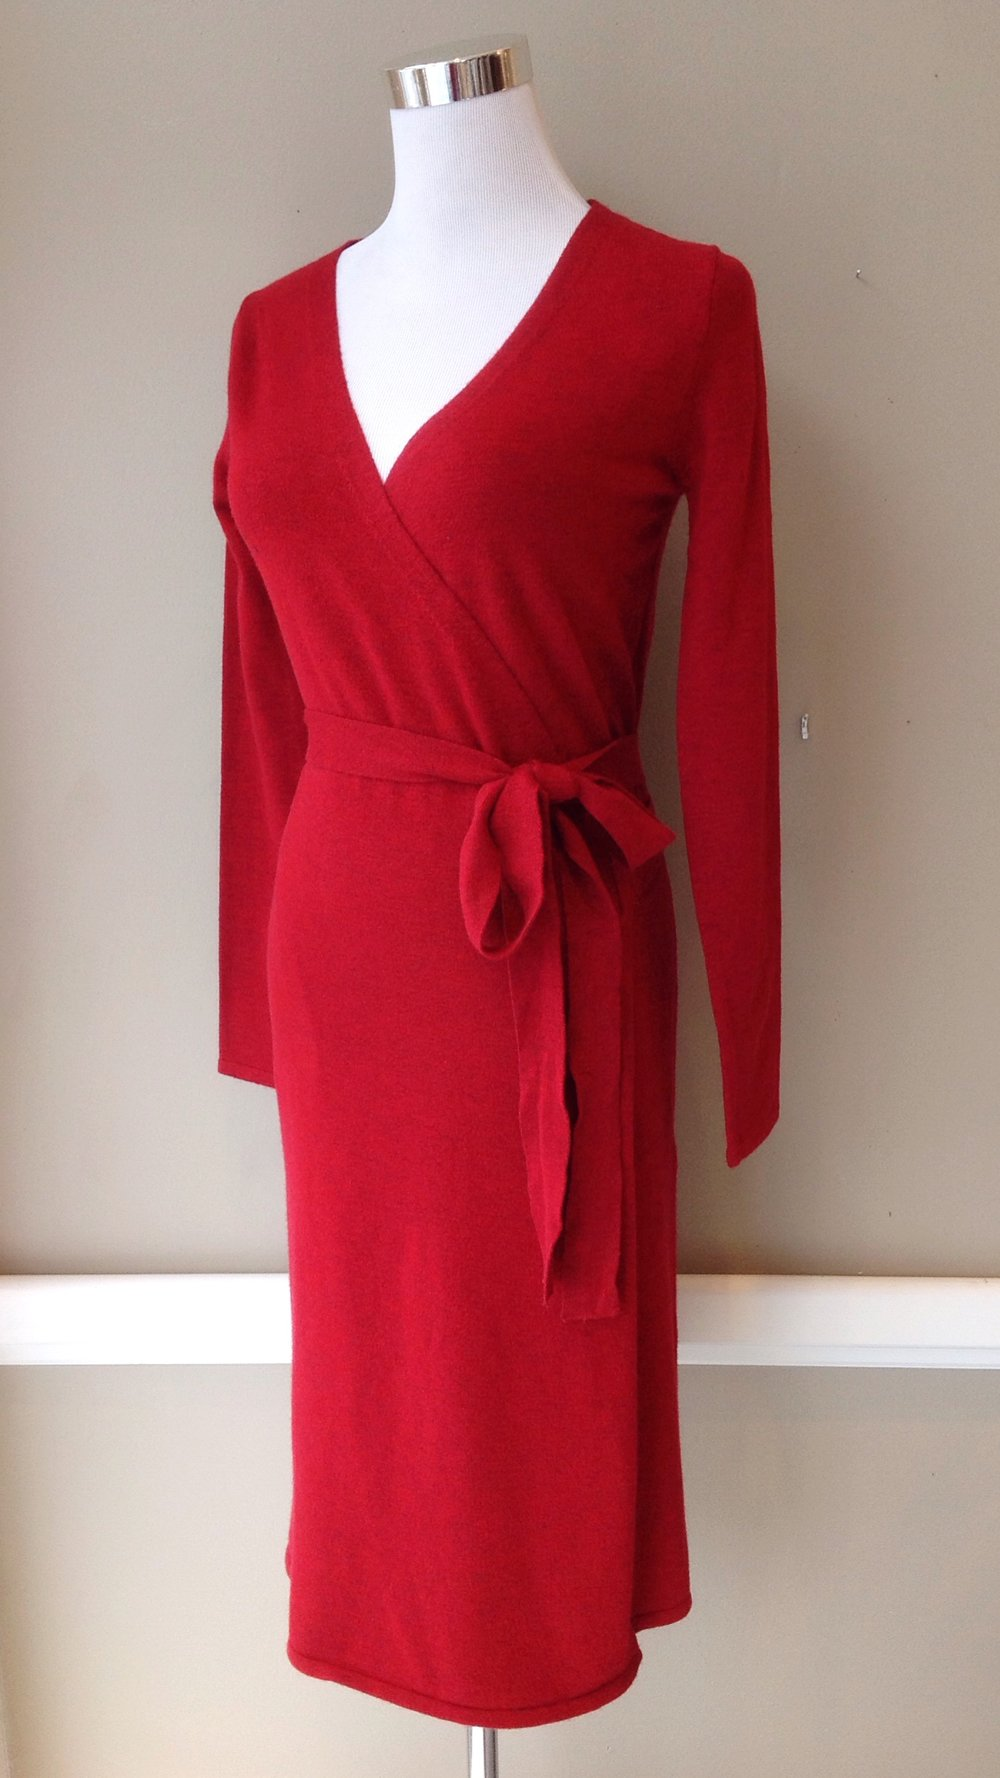 Light sweater knit wrap dress in deep red, $52. Also available in black